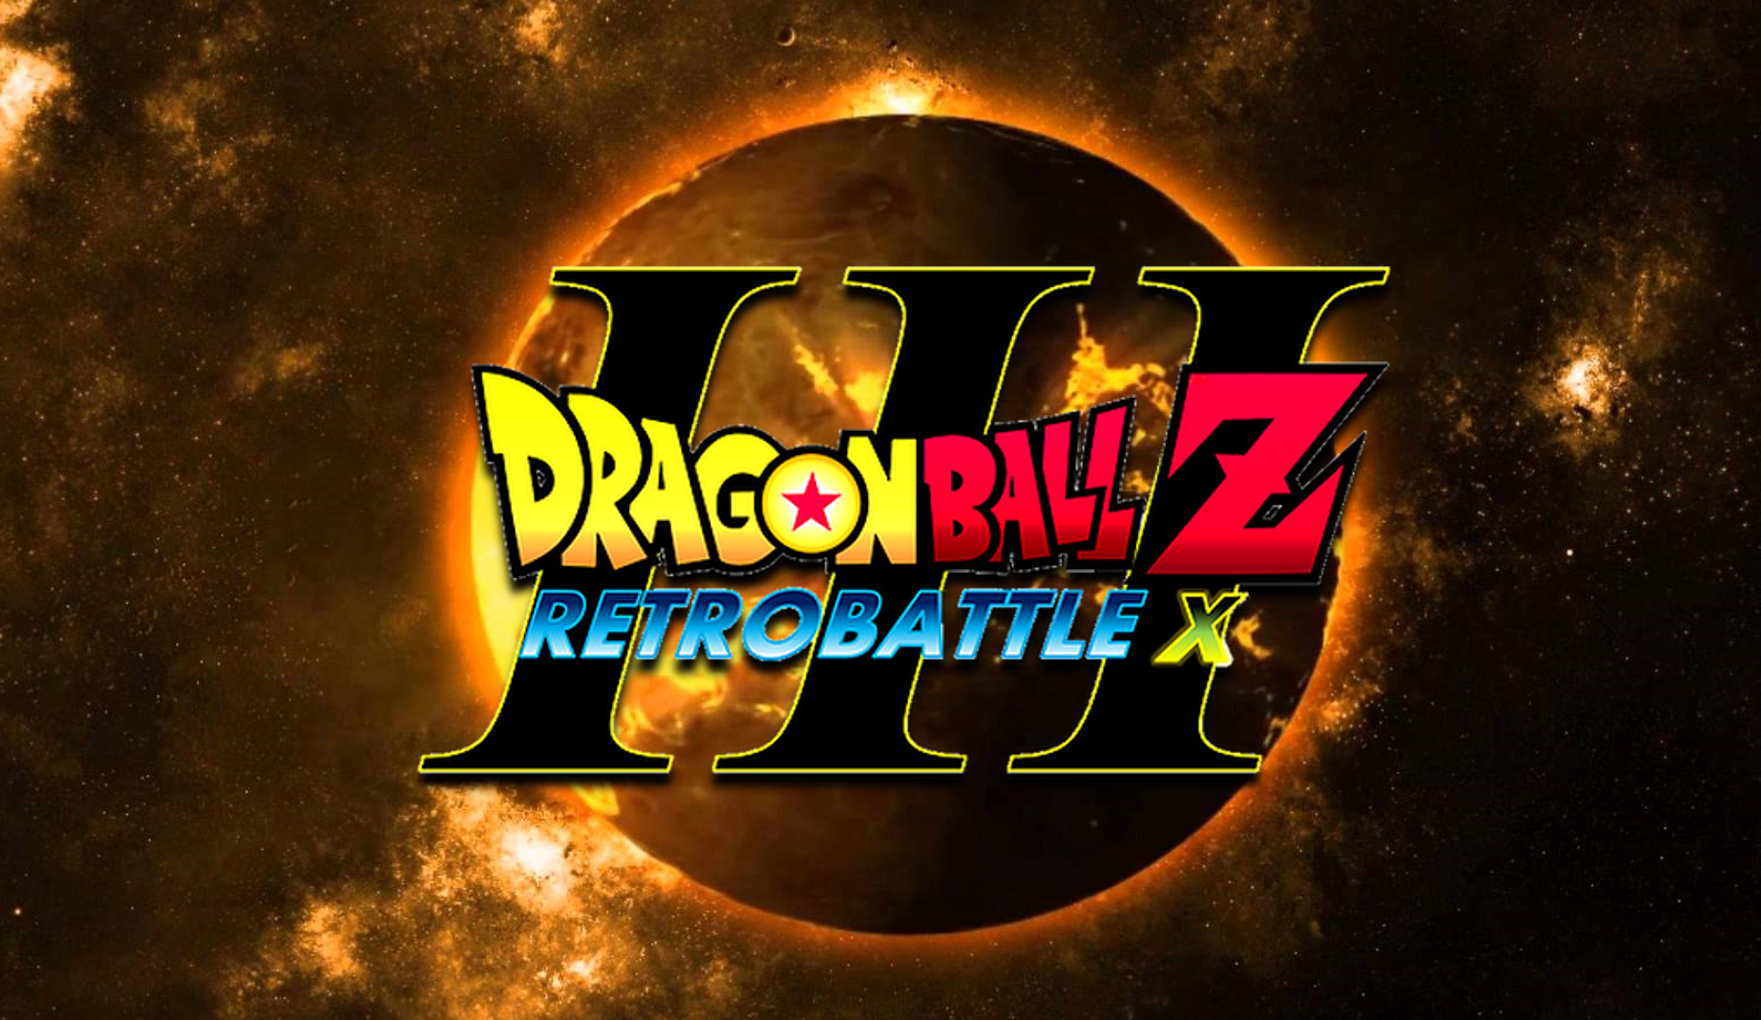 Dragon Ball Z : Retro Battle X 3 ( Full Version ) file - Indie DB